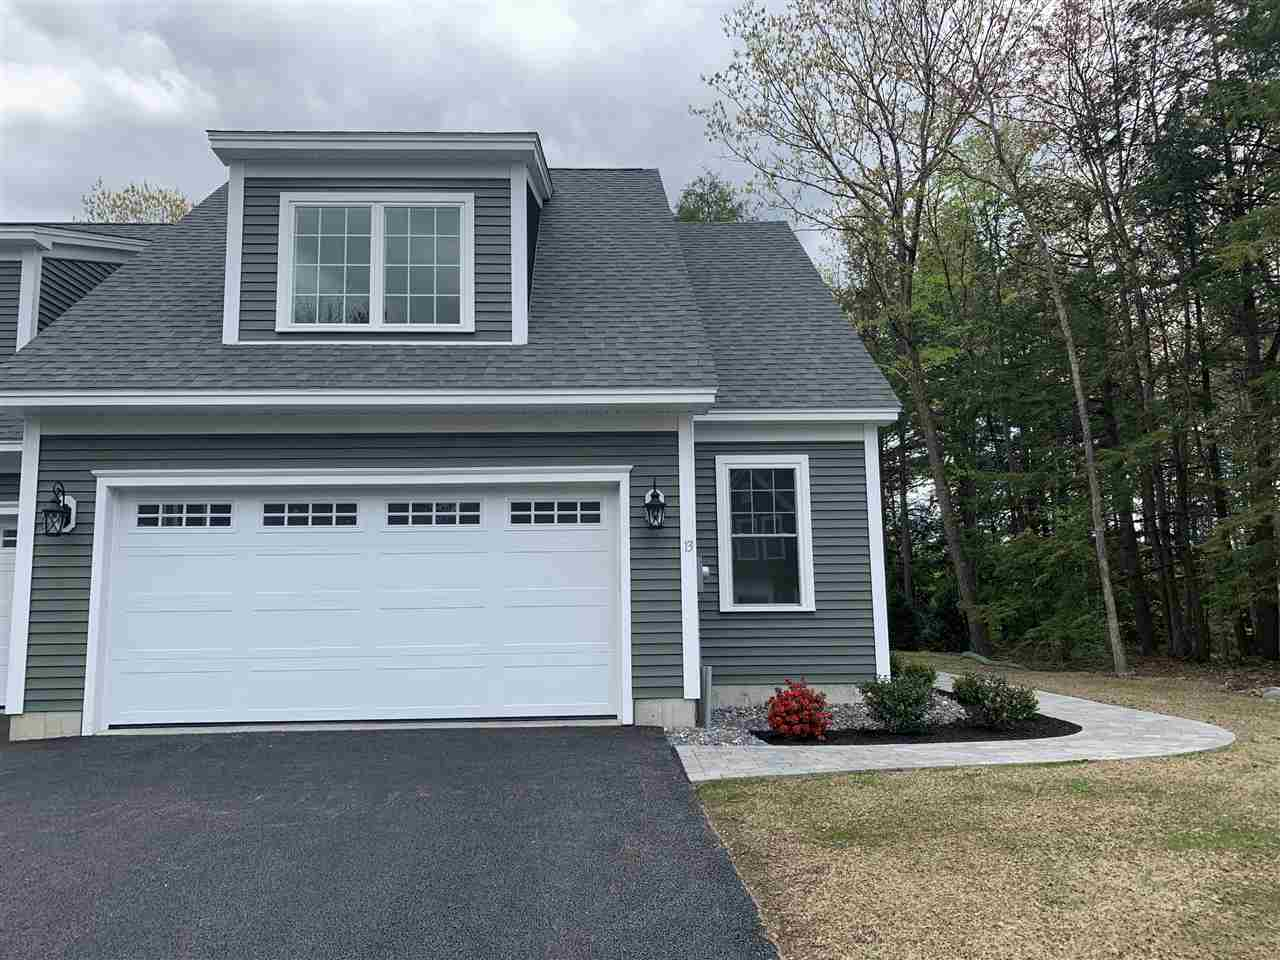 Photo of 13 Green Road Newmarket NH 03857